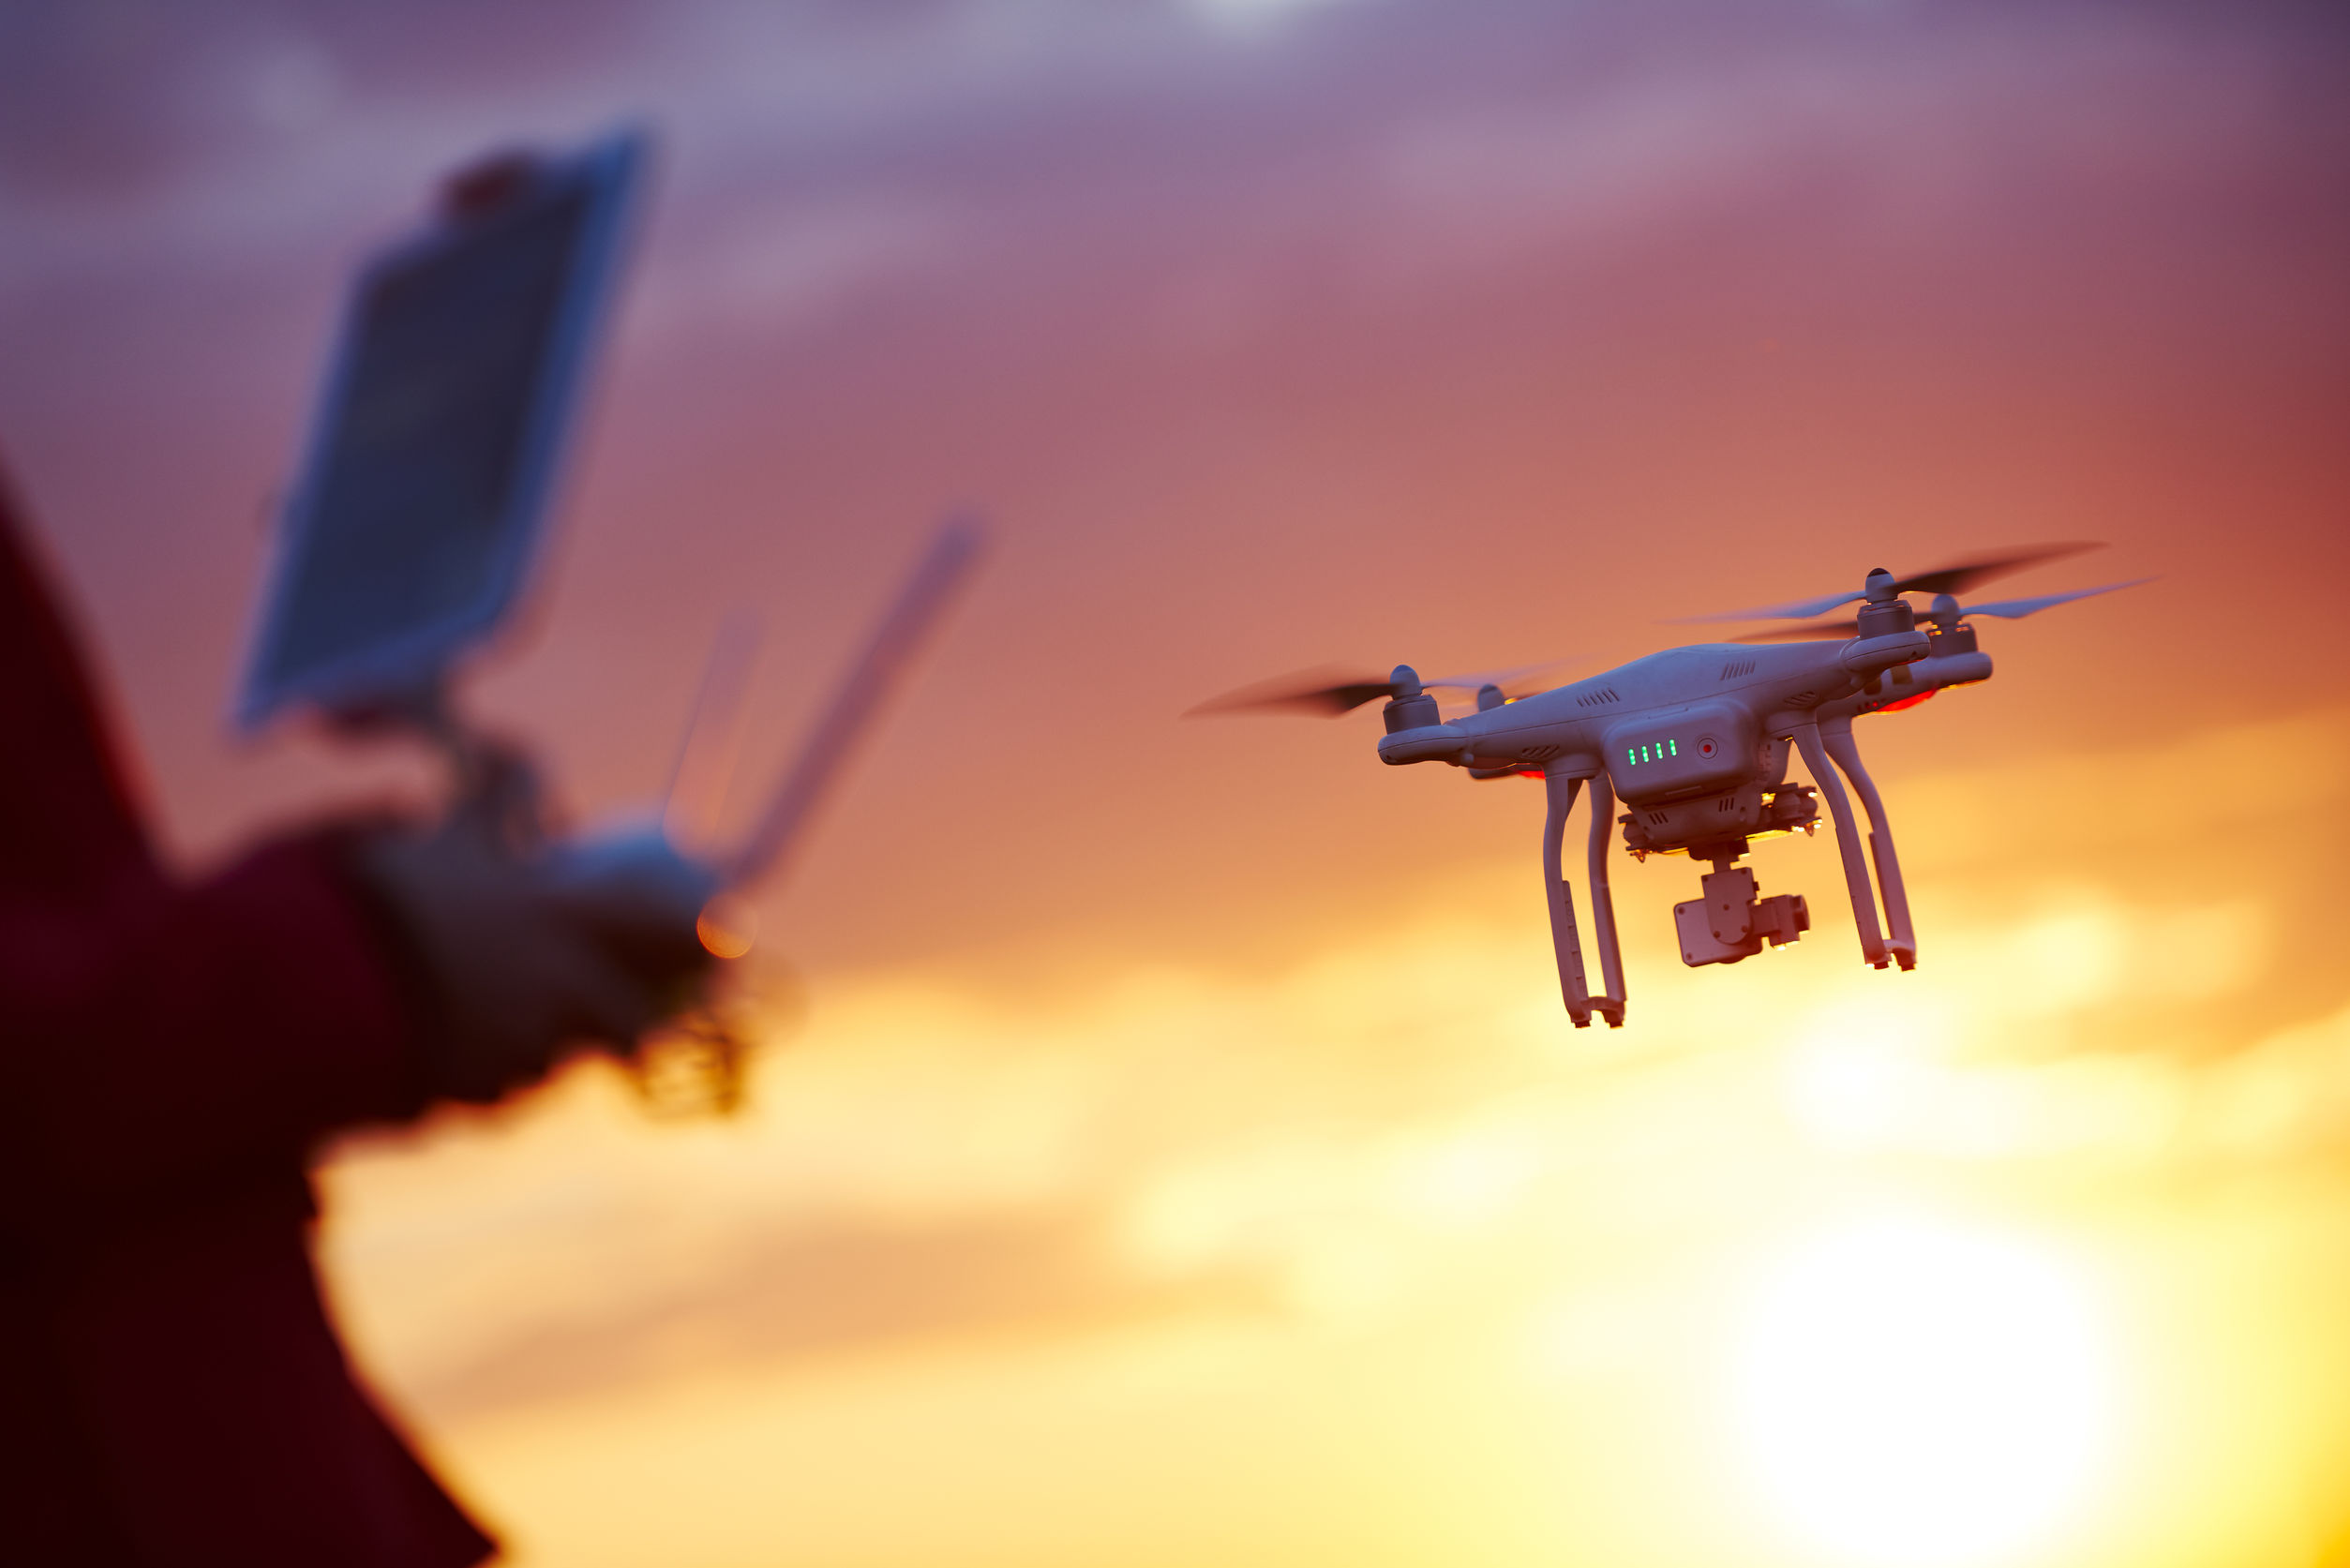 New Training Requirements For Unmanned Aircraft Operations